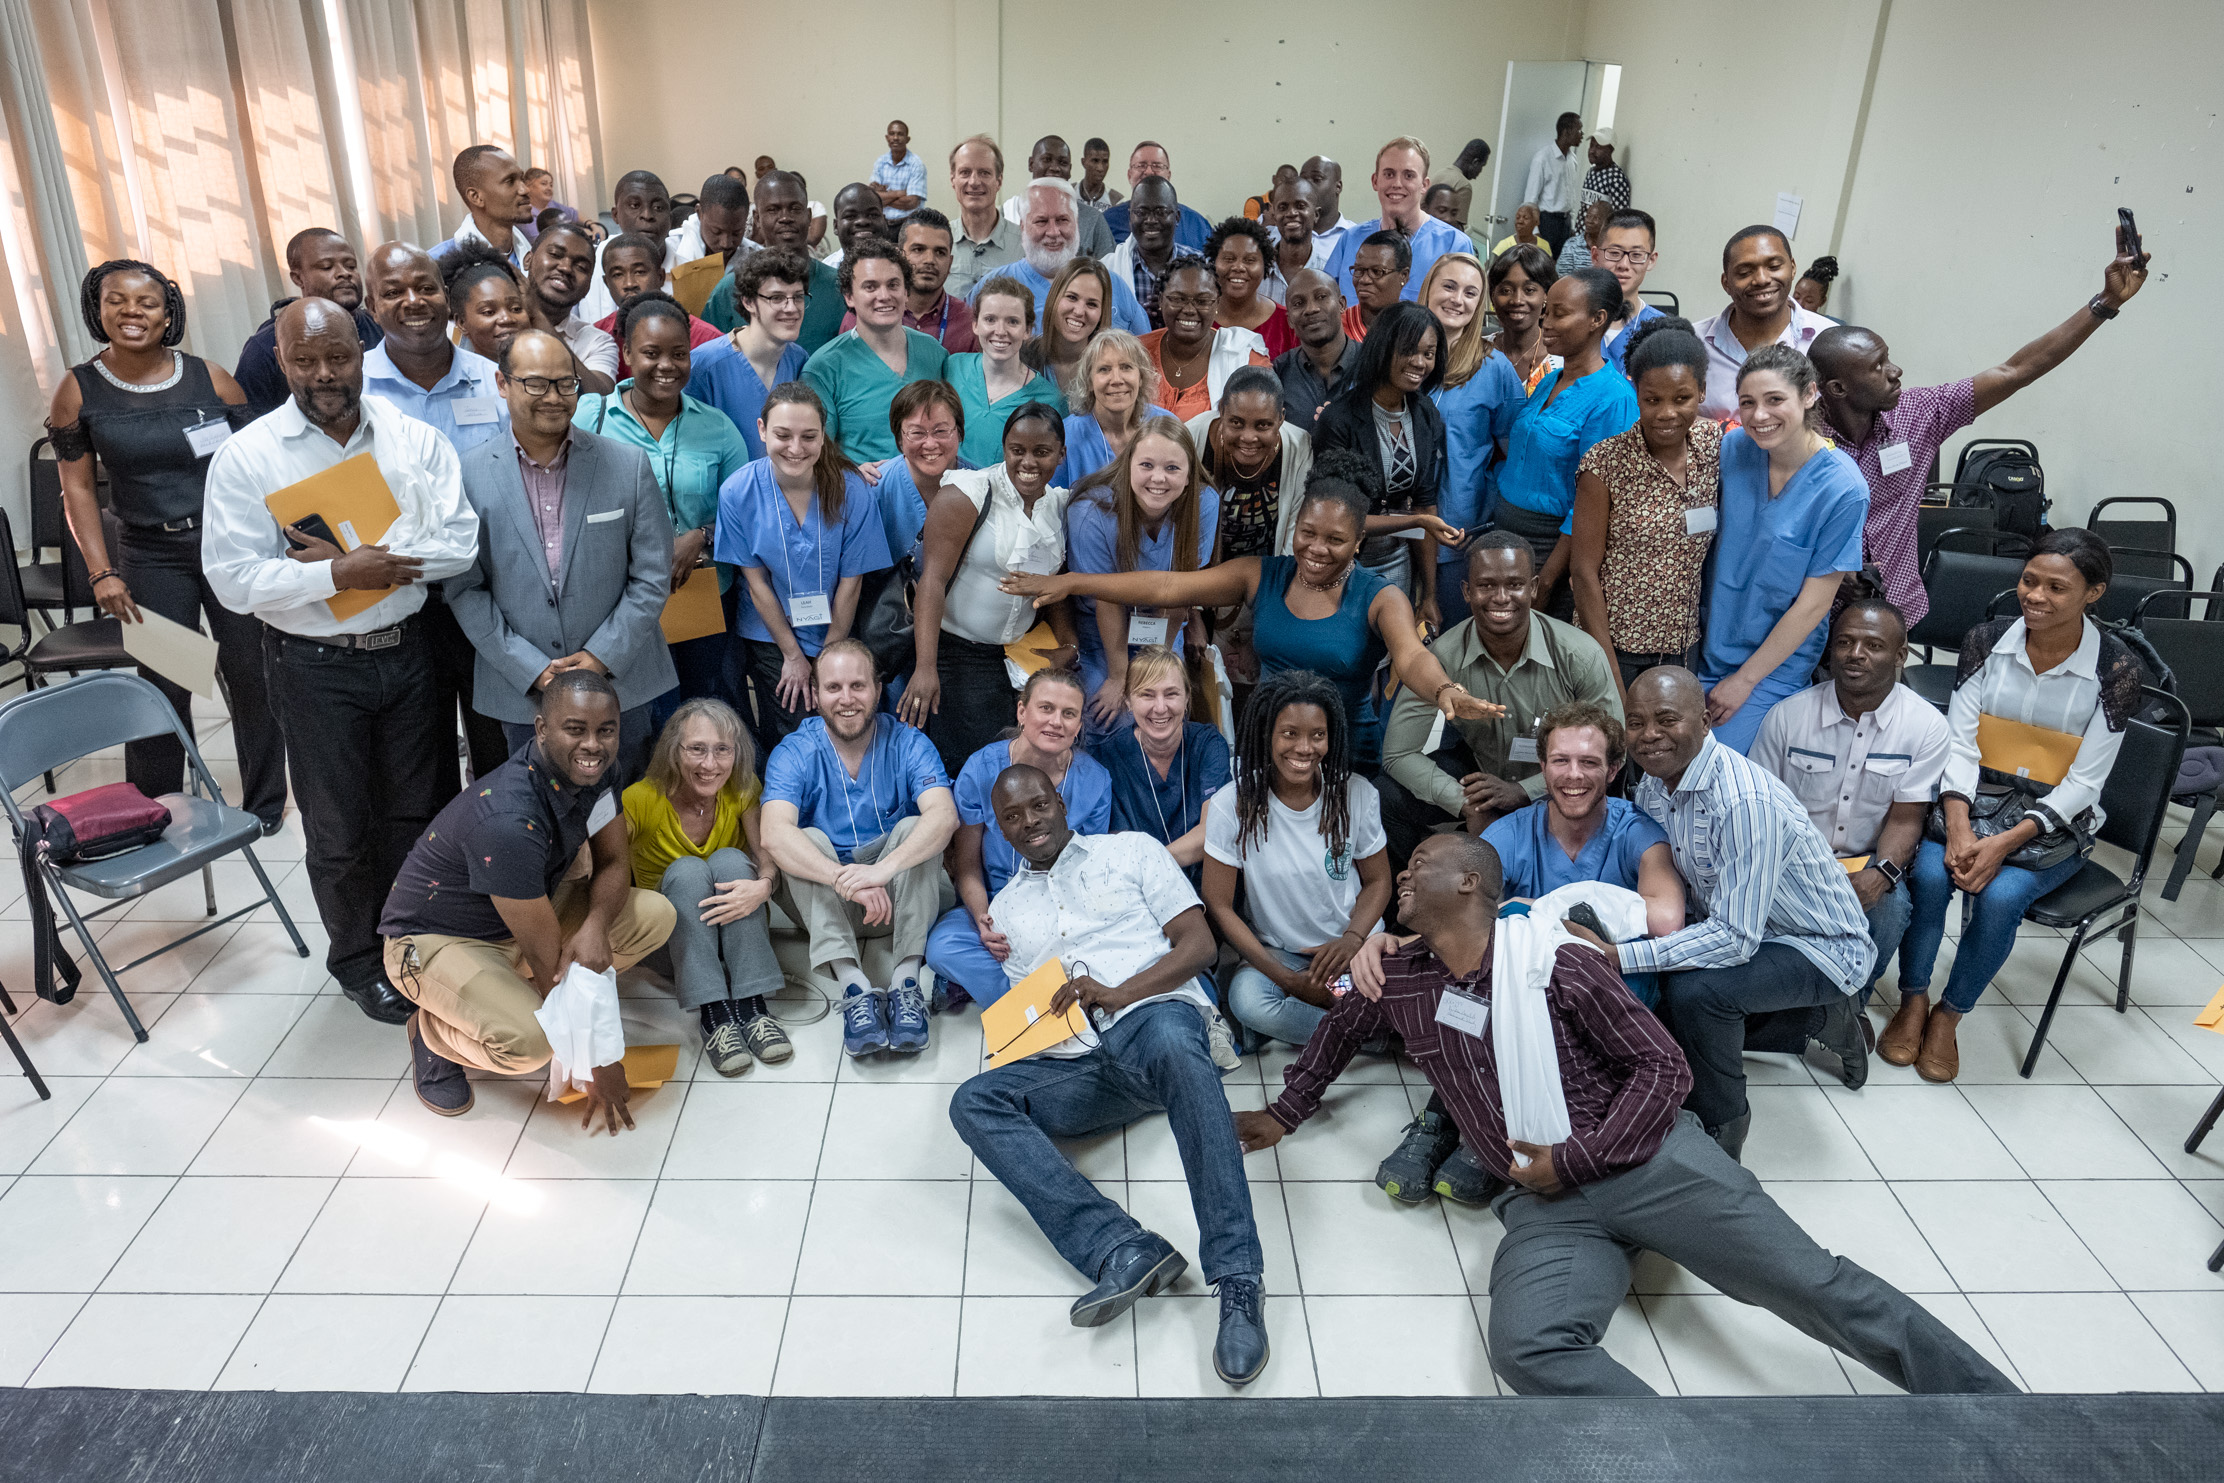 The Haiti Team wraps a week of intensive, hands-on training in Port-au-Prince, Haiti.